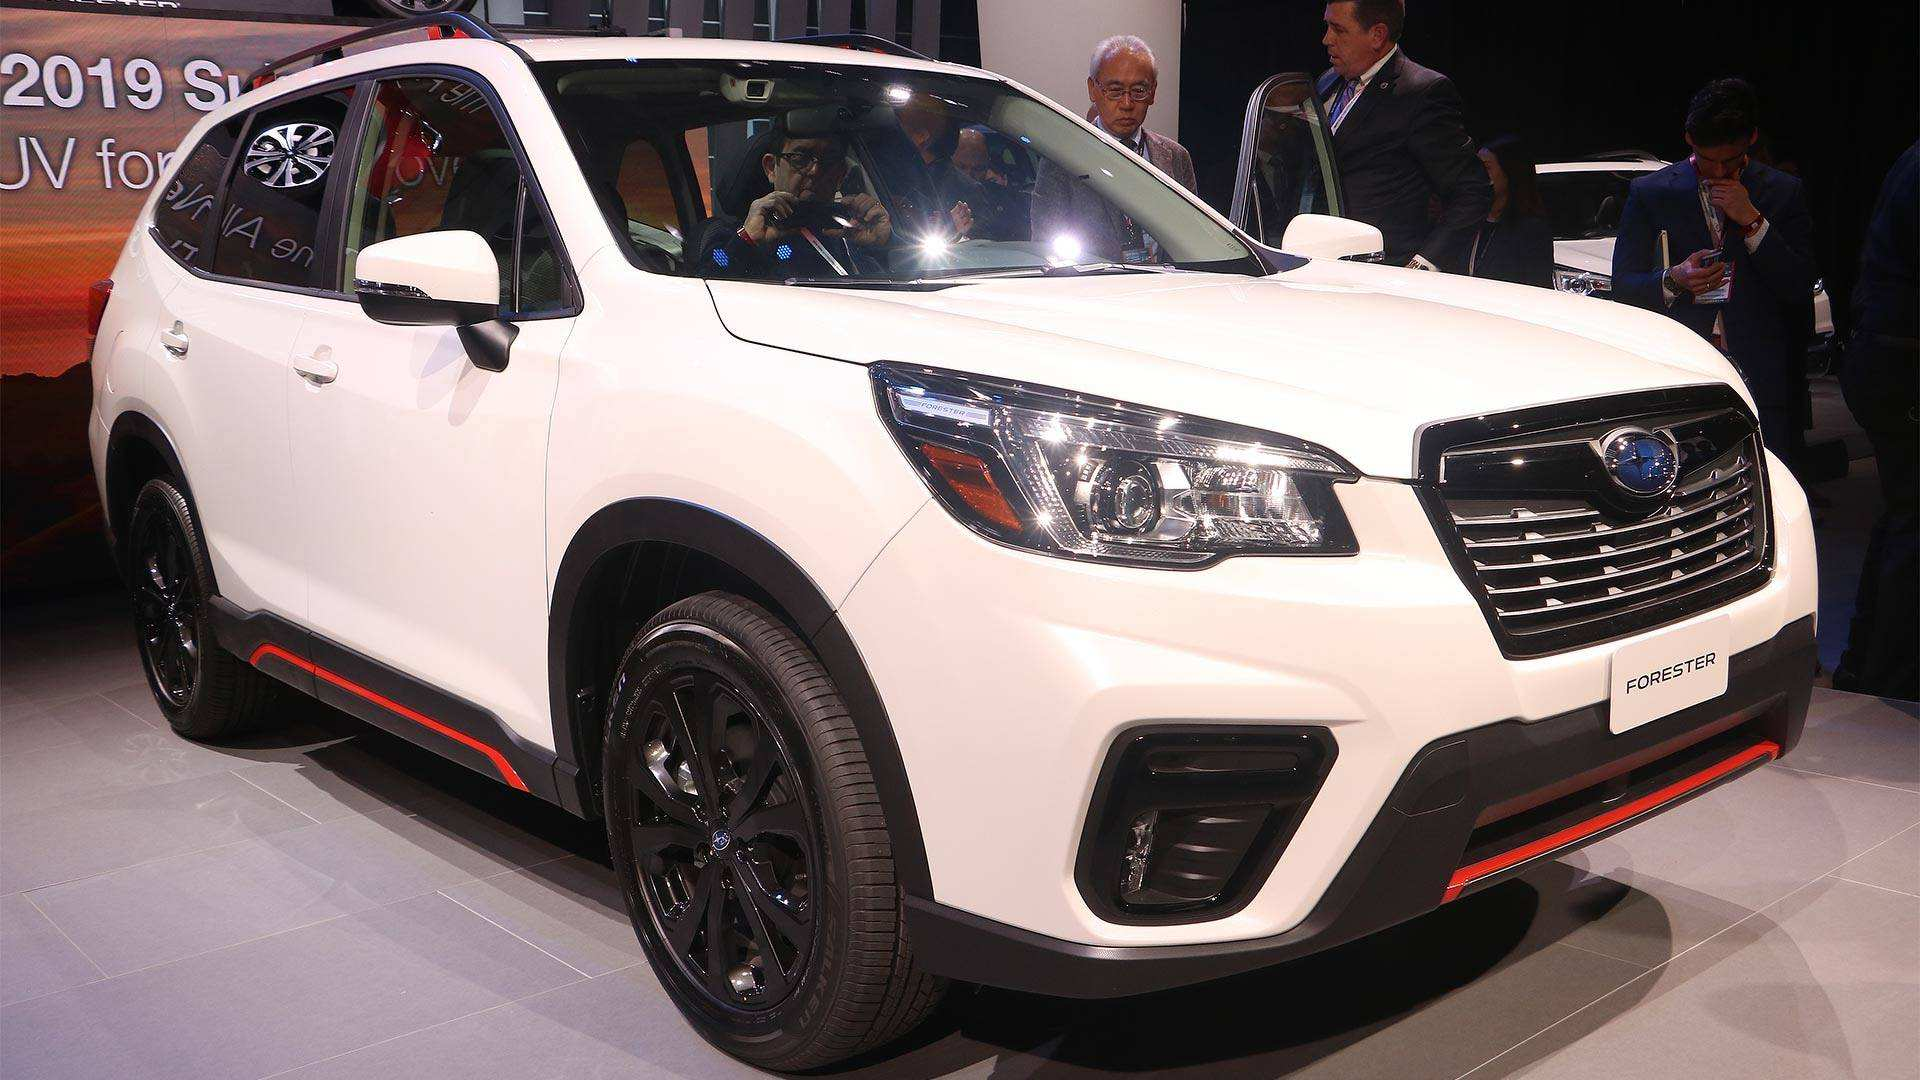 99 Concept of New Subaru Forester 2019 Usa New Review Release with New Subaru Forester 2019 Usa New Review